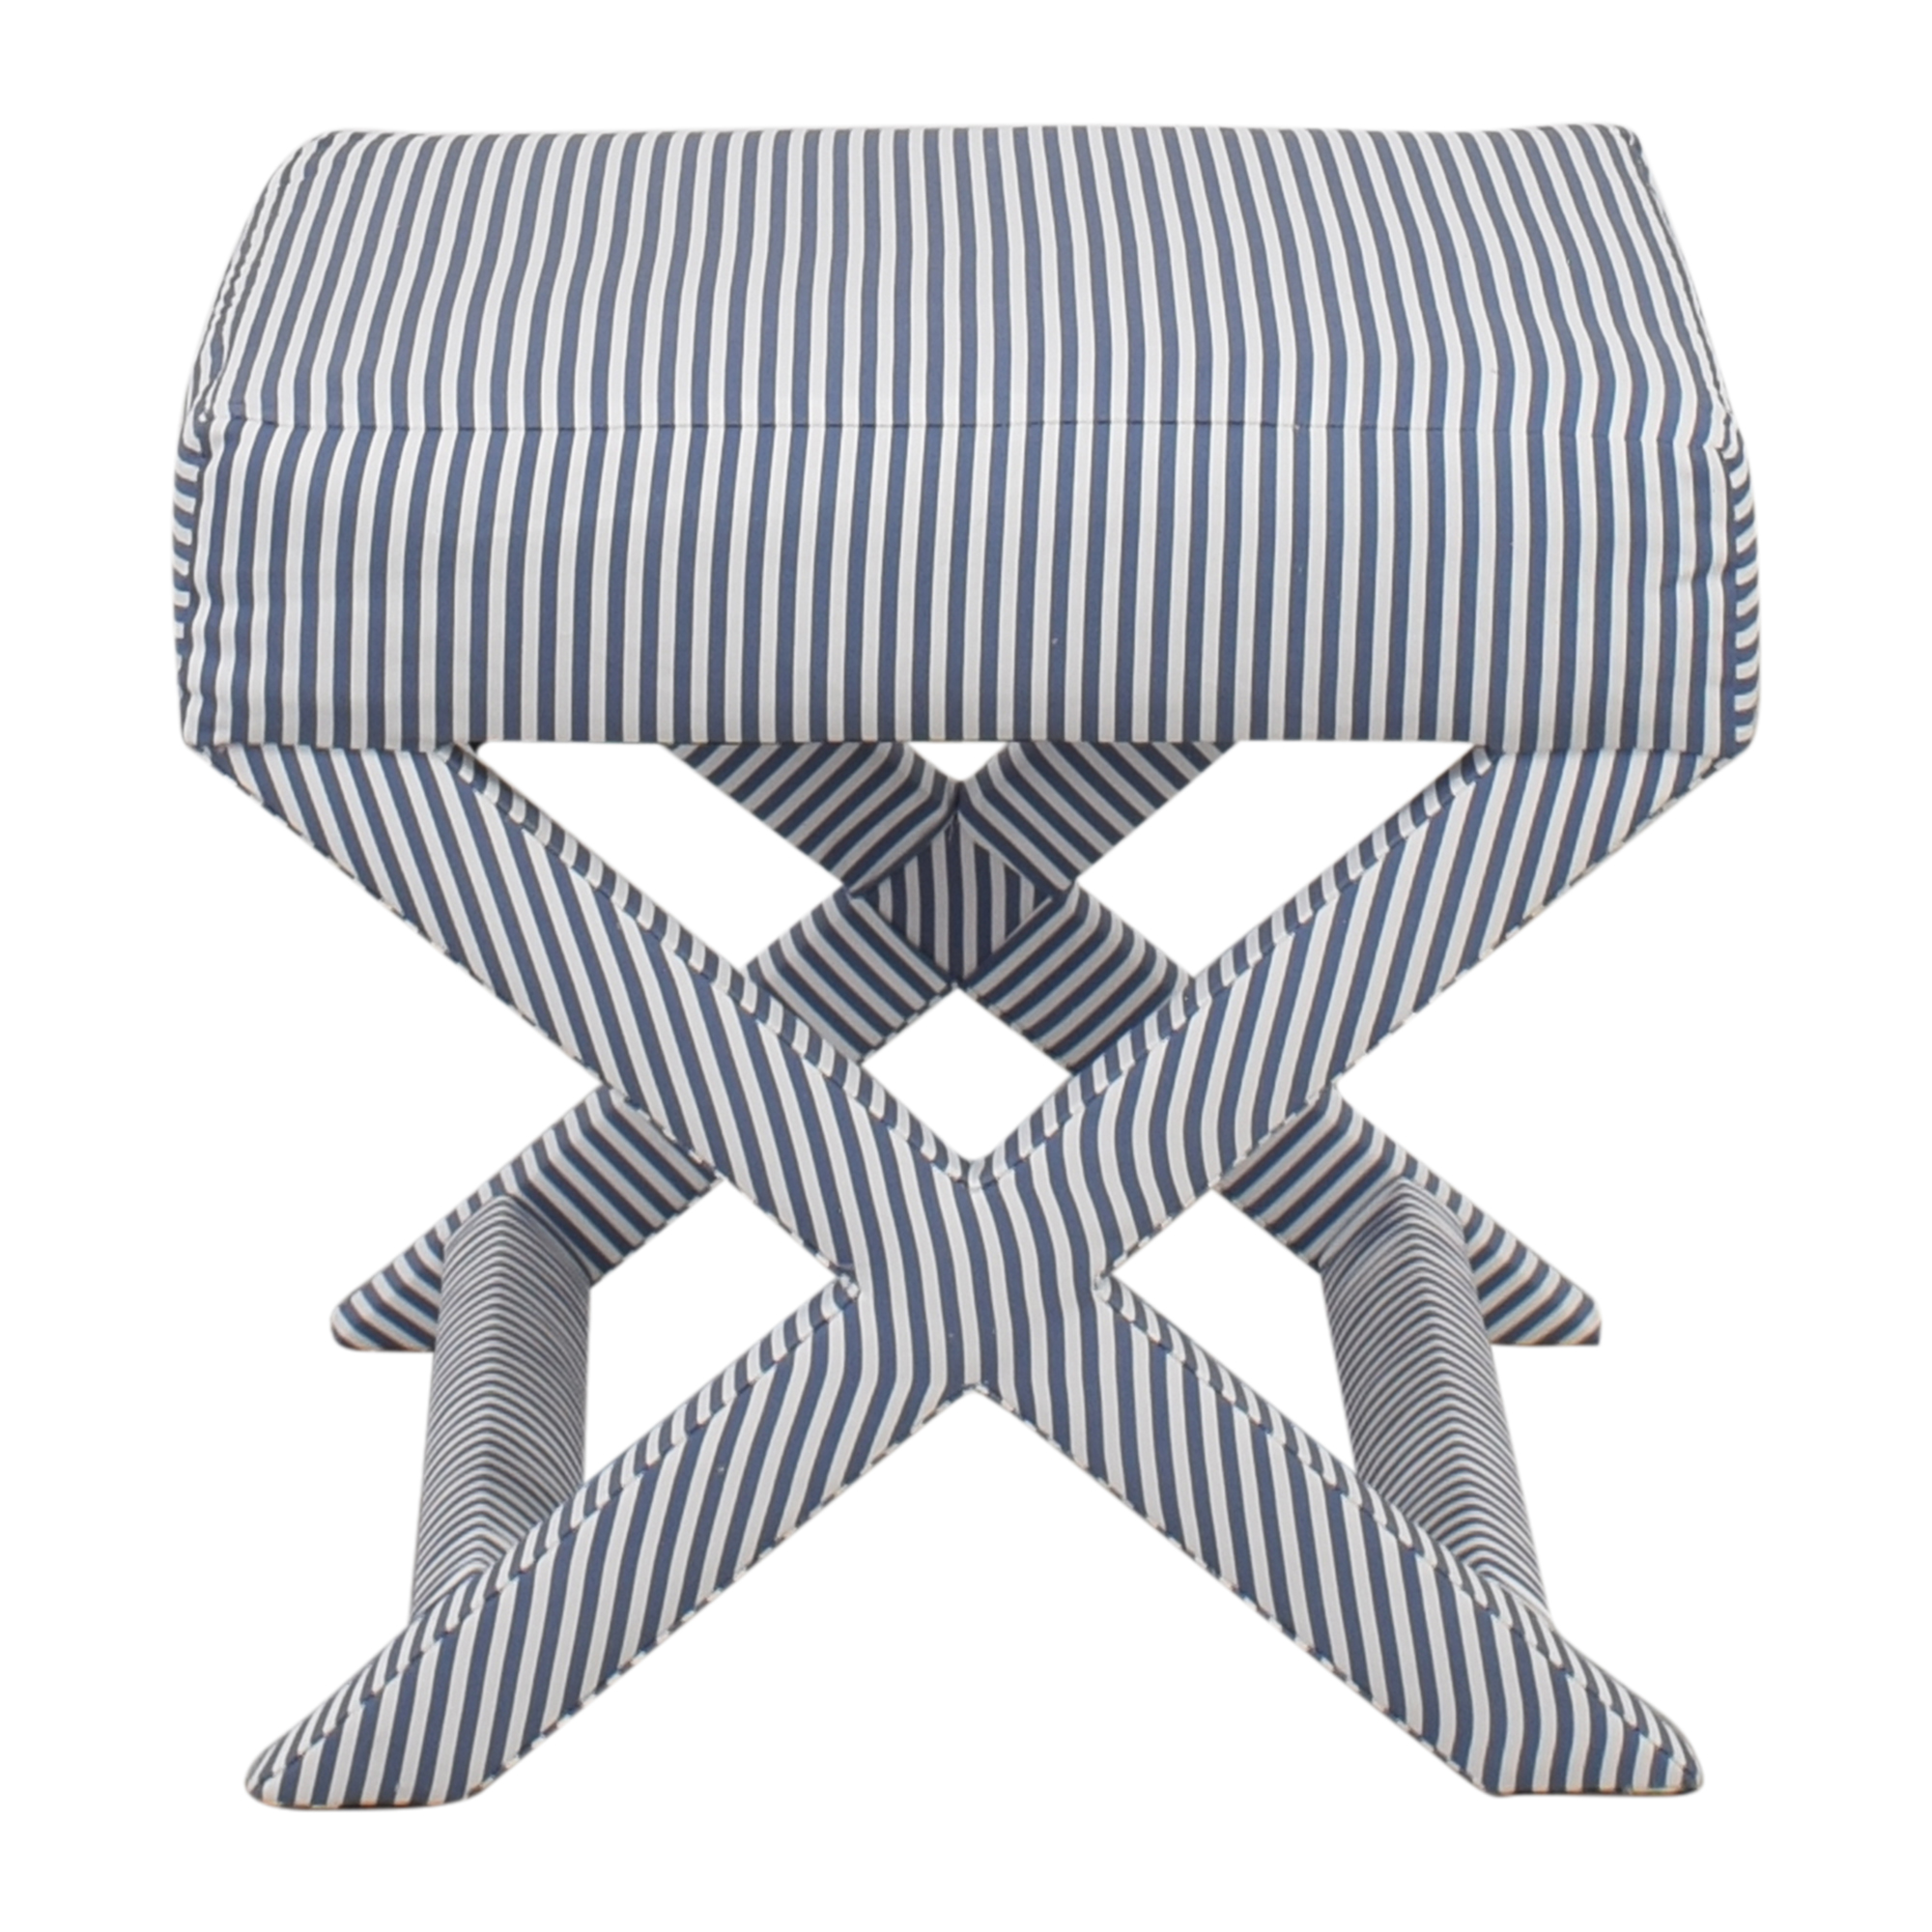 buy The Inside The inside Ticking Stripe X Bench online